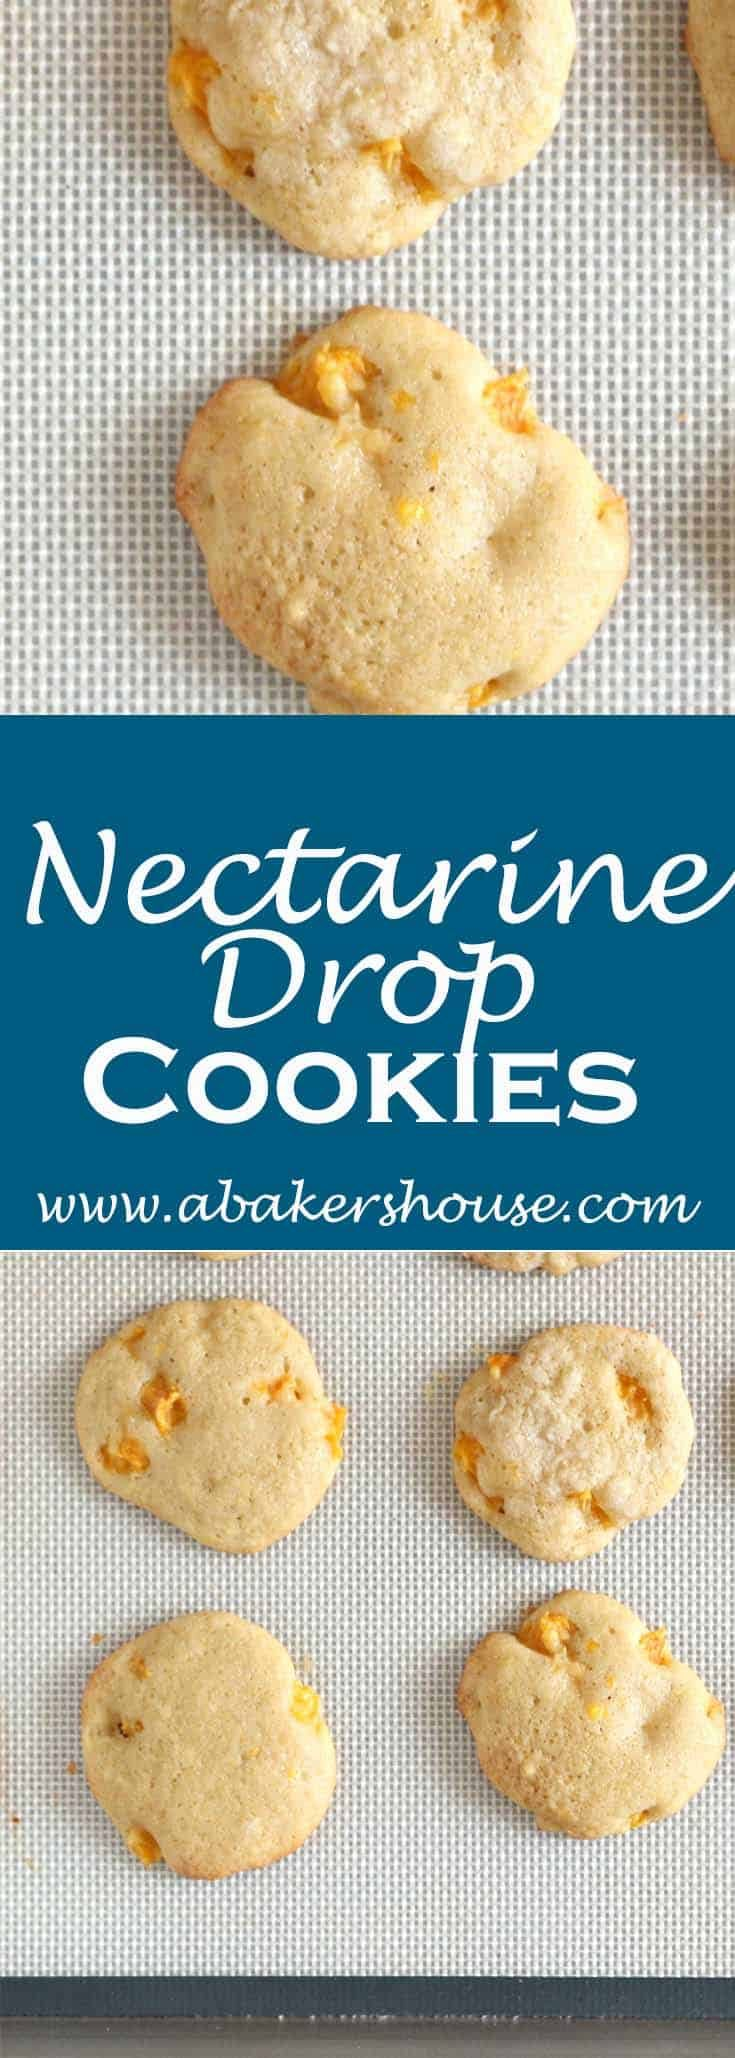 Baking with stone fruit is often reserved for pies but cookies are a great option too. Make this recipe from Martha Stewart for nectarine drop cookies. The end result is a soft, pillow-like cookie that I found best enjoyed on the first day.#abakershouse #nectarinecookies #fruitcookies #jamcookies #marthastewartrecipe